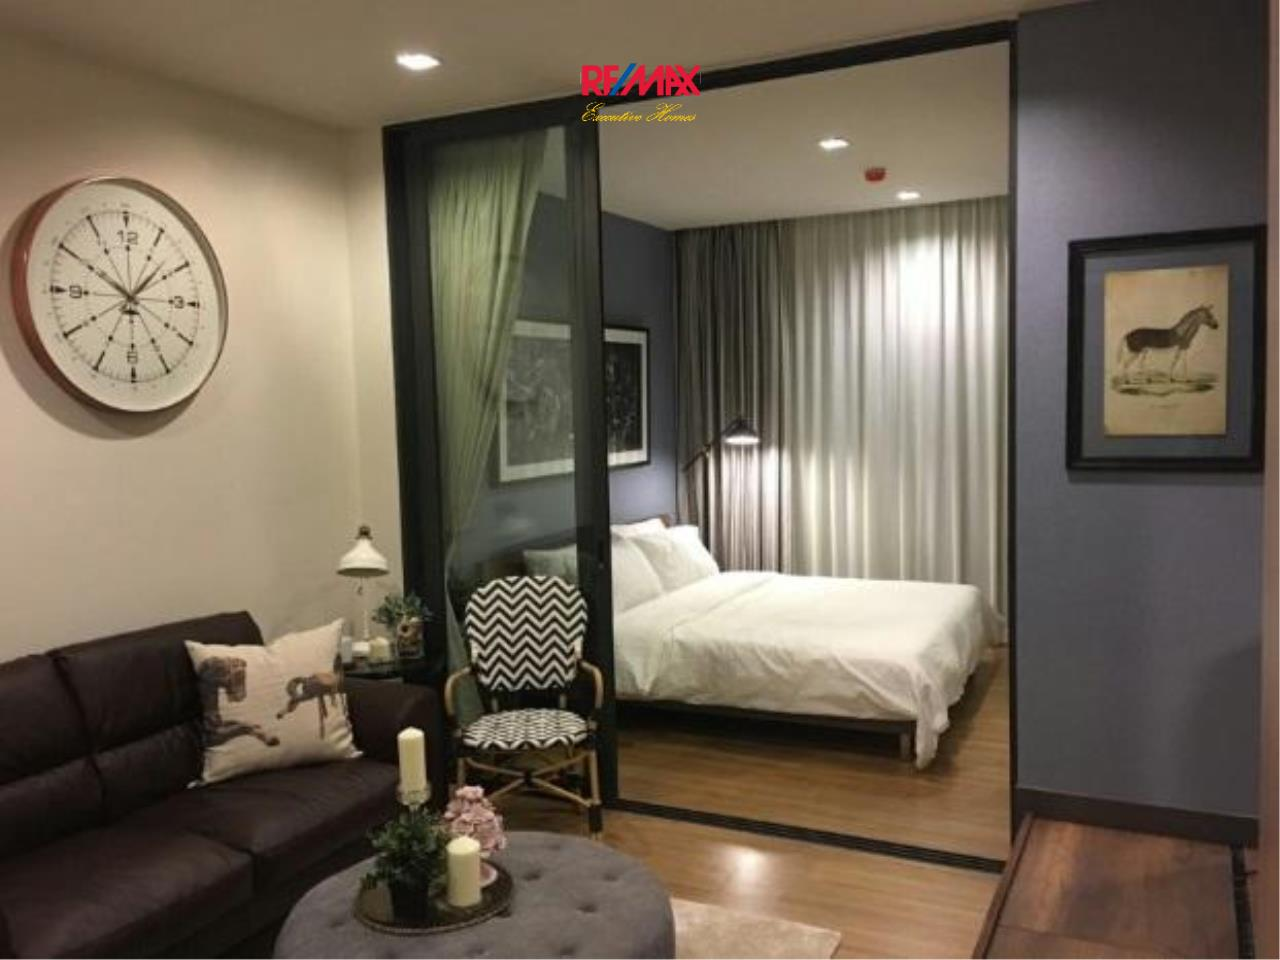 RE/MAX Executive Homes Agency's Beautiful 1 Bedroom for Sale Hasu Haus 5